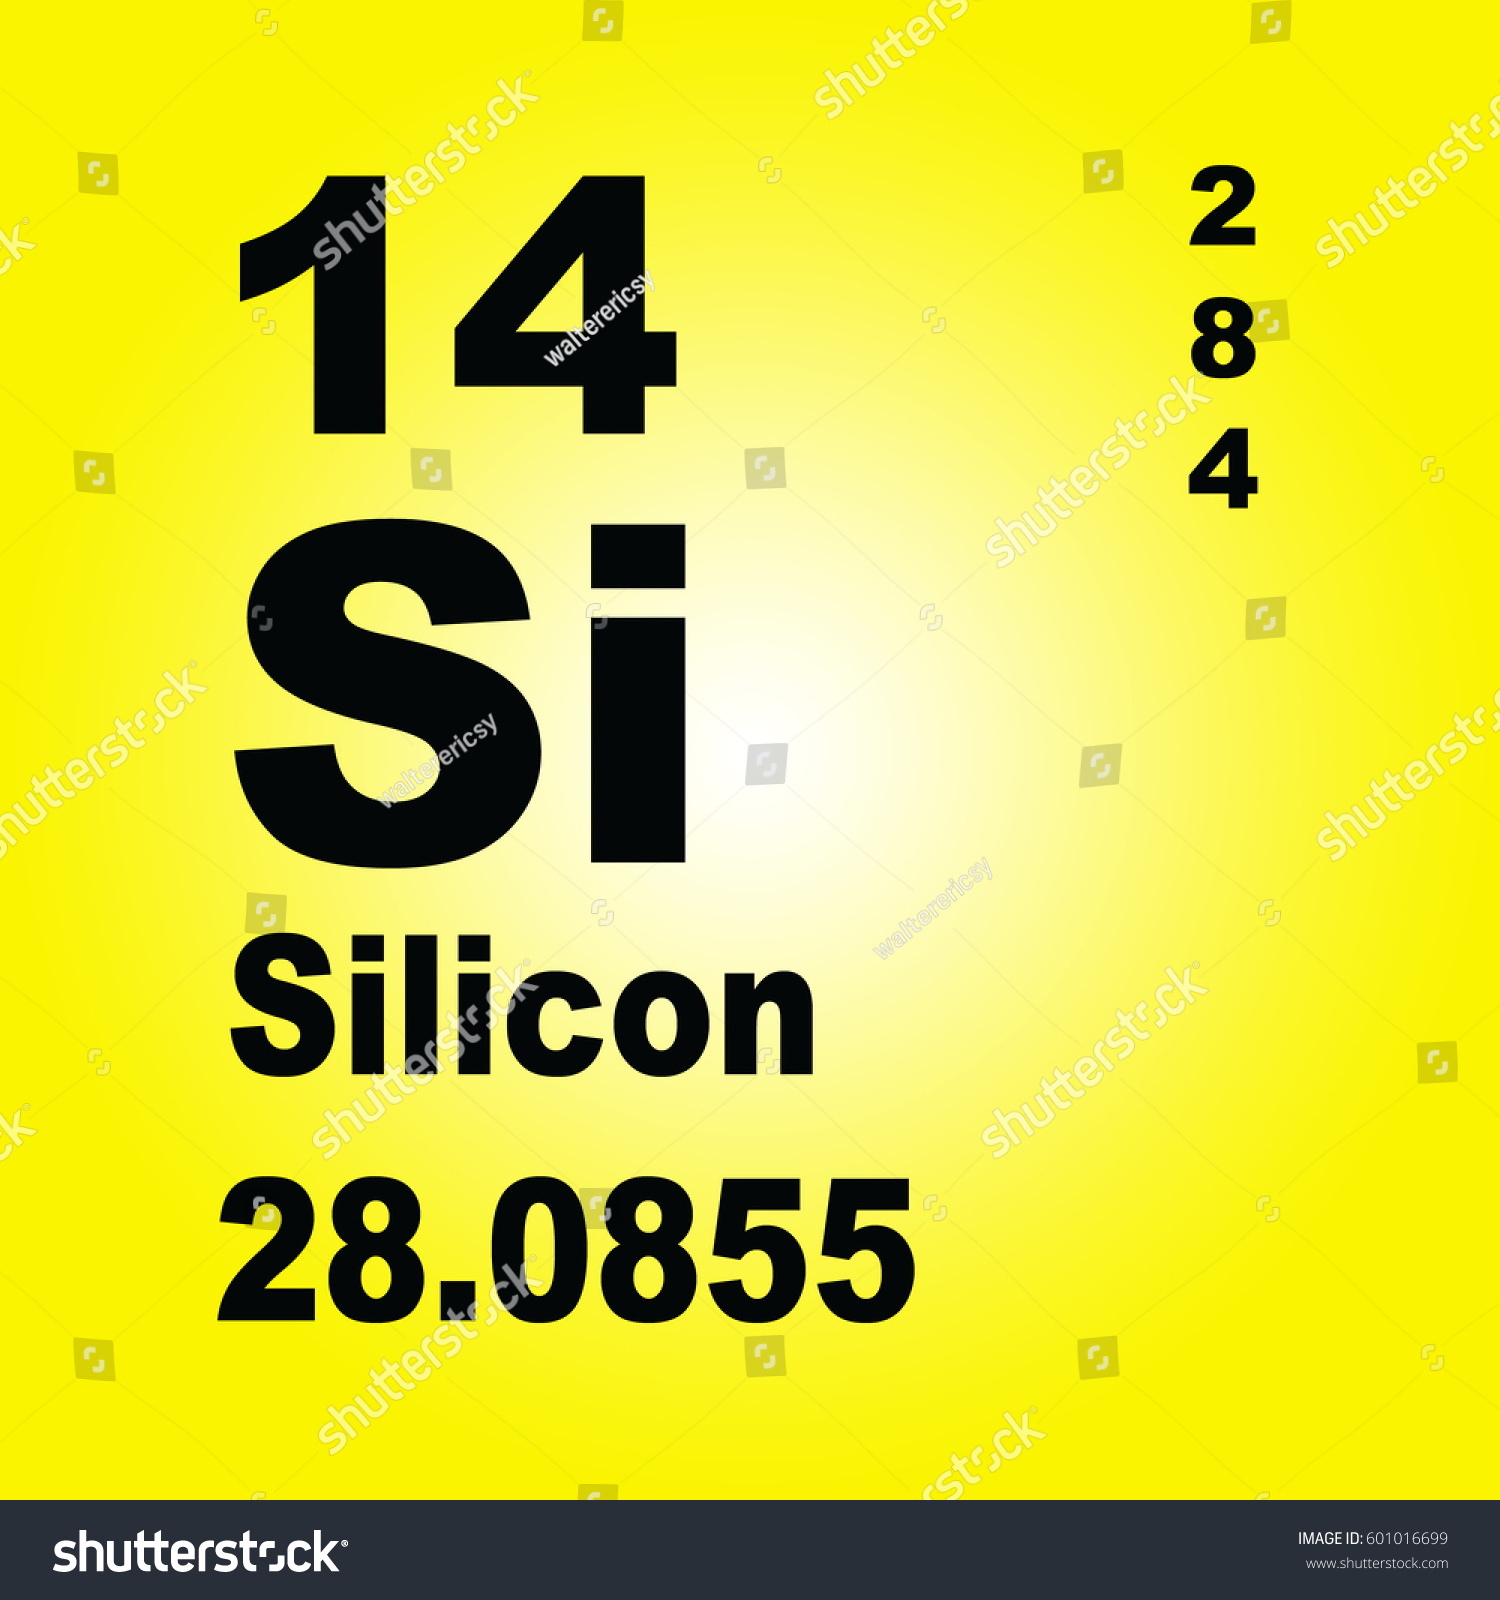 Silicon symbol periodic table image collections periodic table silicon on the periodic table image collections periodic table silicon symbol periodic table image collections periodic gamestrikefo Choice Image